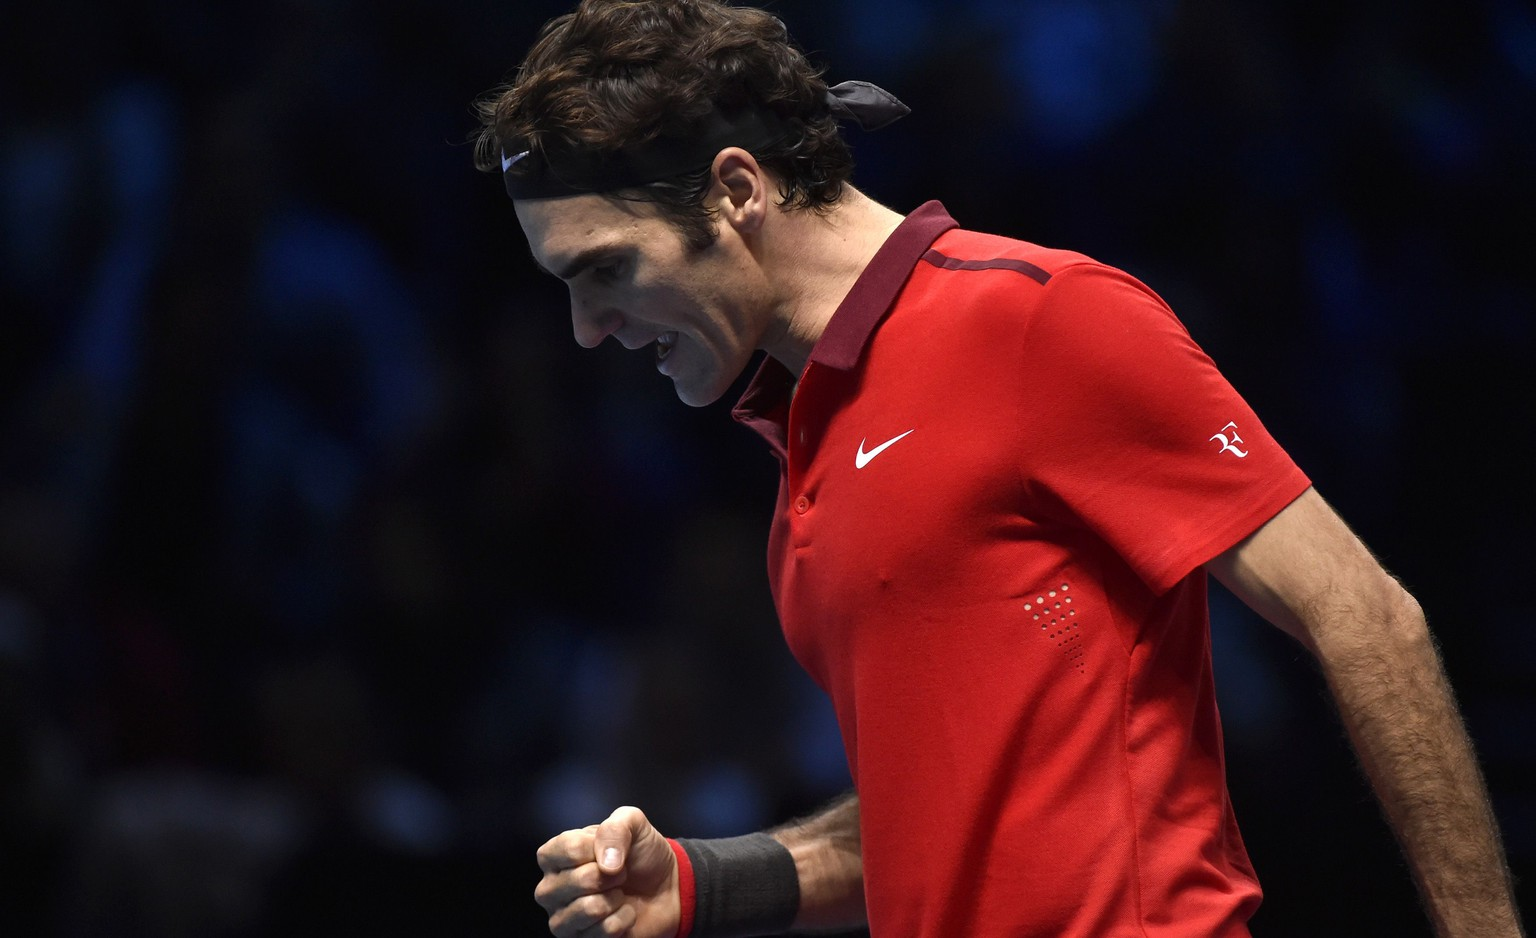 Roger Federer of Switzerland reacts during his semi-final tennis match against Stan Wawrinka of Switzerland at the ATP World Tour Finals at the O2 Arena in London November 15, 2014. REUTERS/Toby Melville (BRITAIN - Tags: SPORT TENNIS)